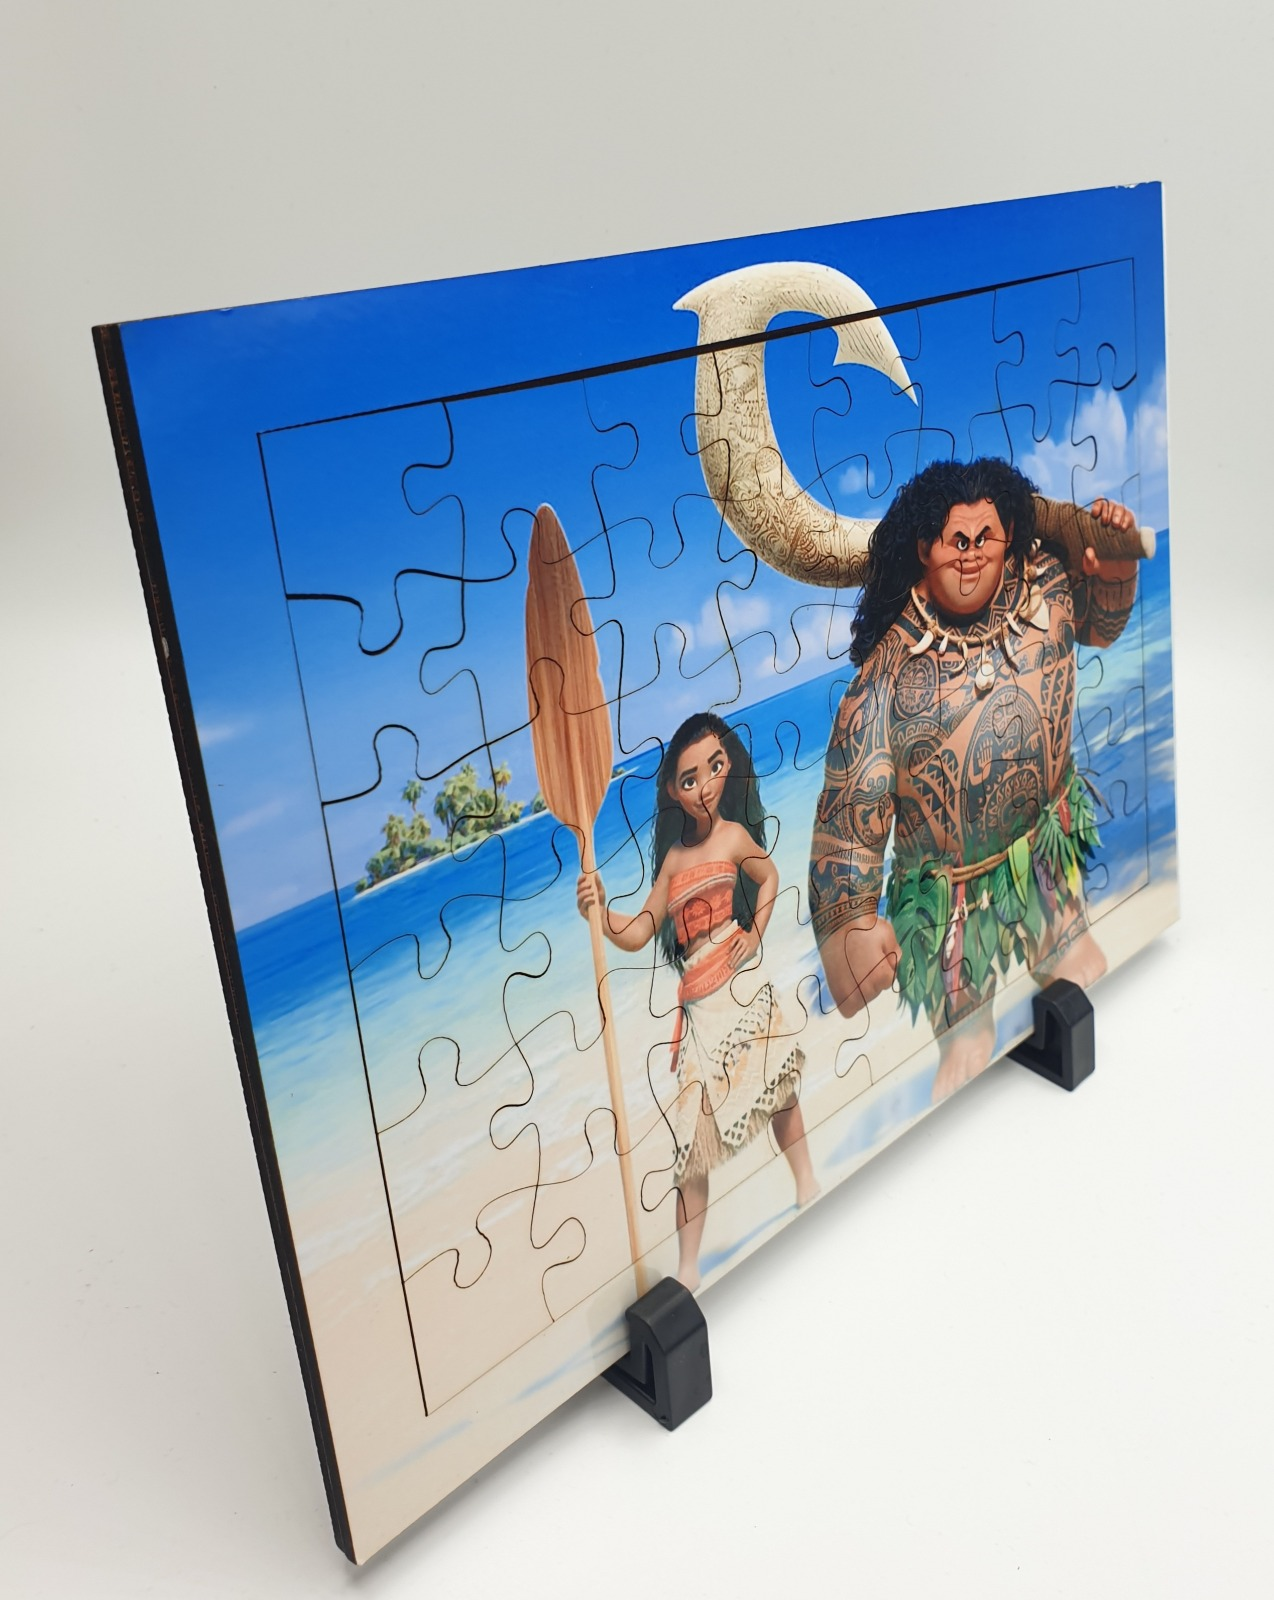 Photo puzzle - The perfect gift